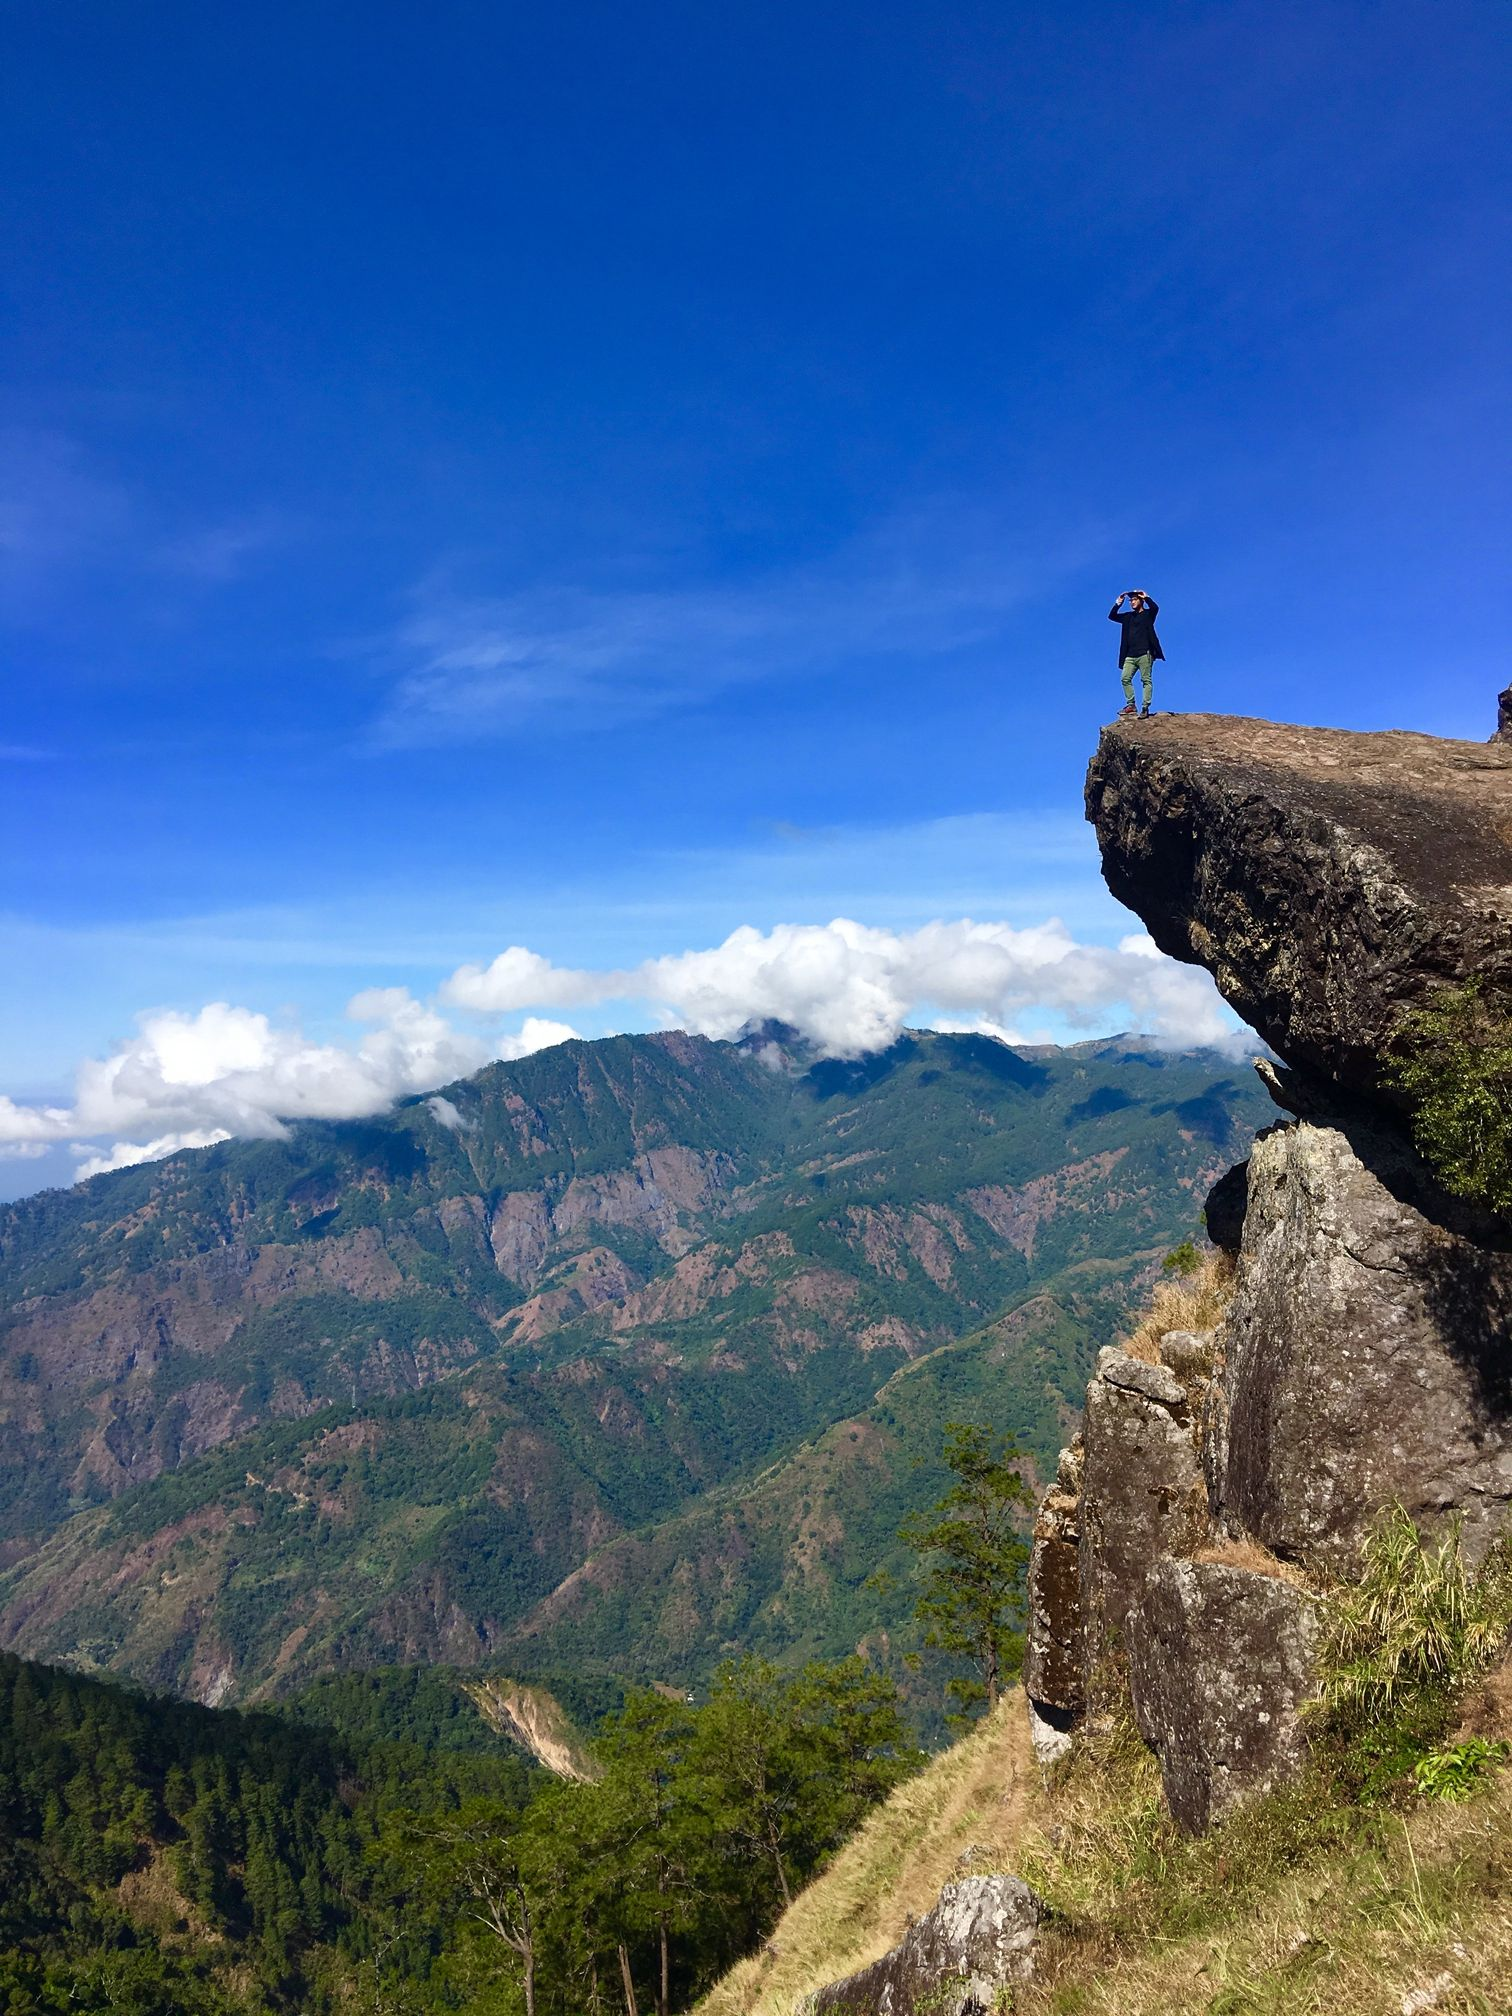 Man poses at the Gungal Rock overlooking the Cordilleras in Mount Ulap